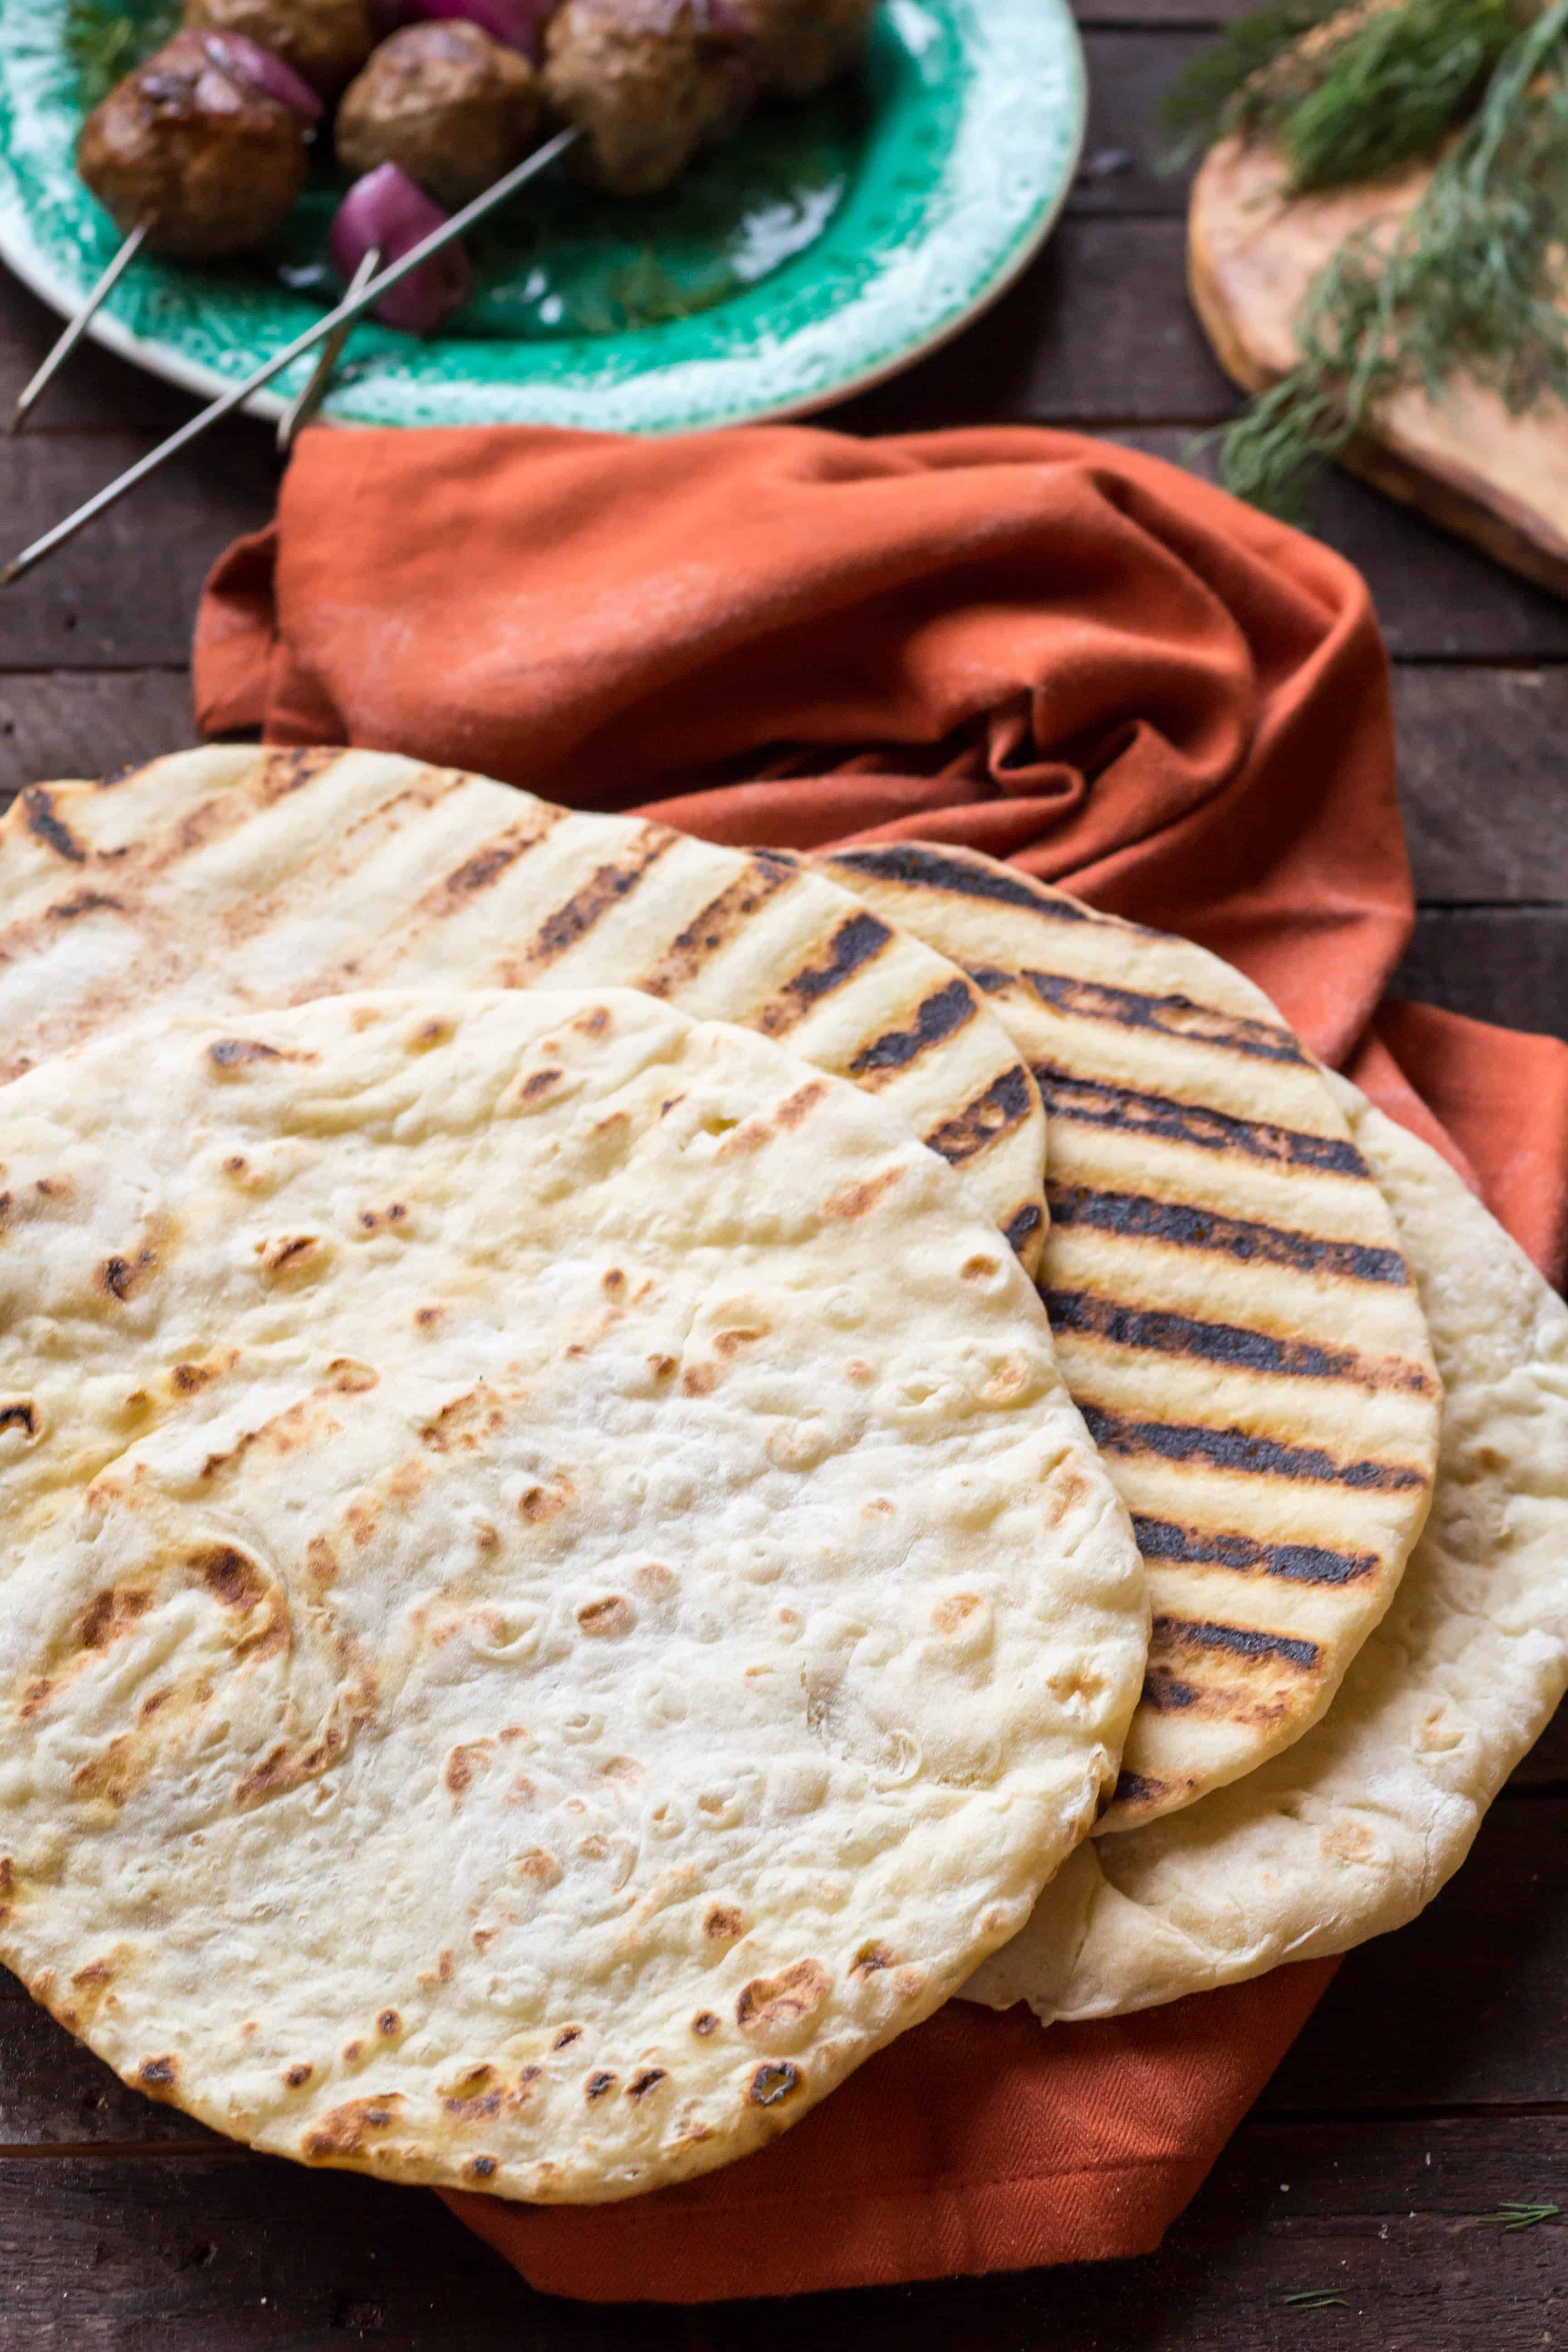 Grilled pita bread on a red napkin.